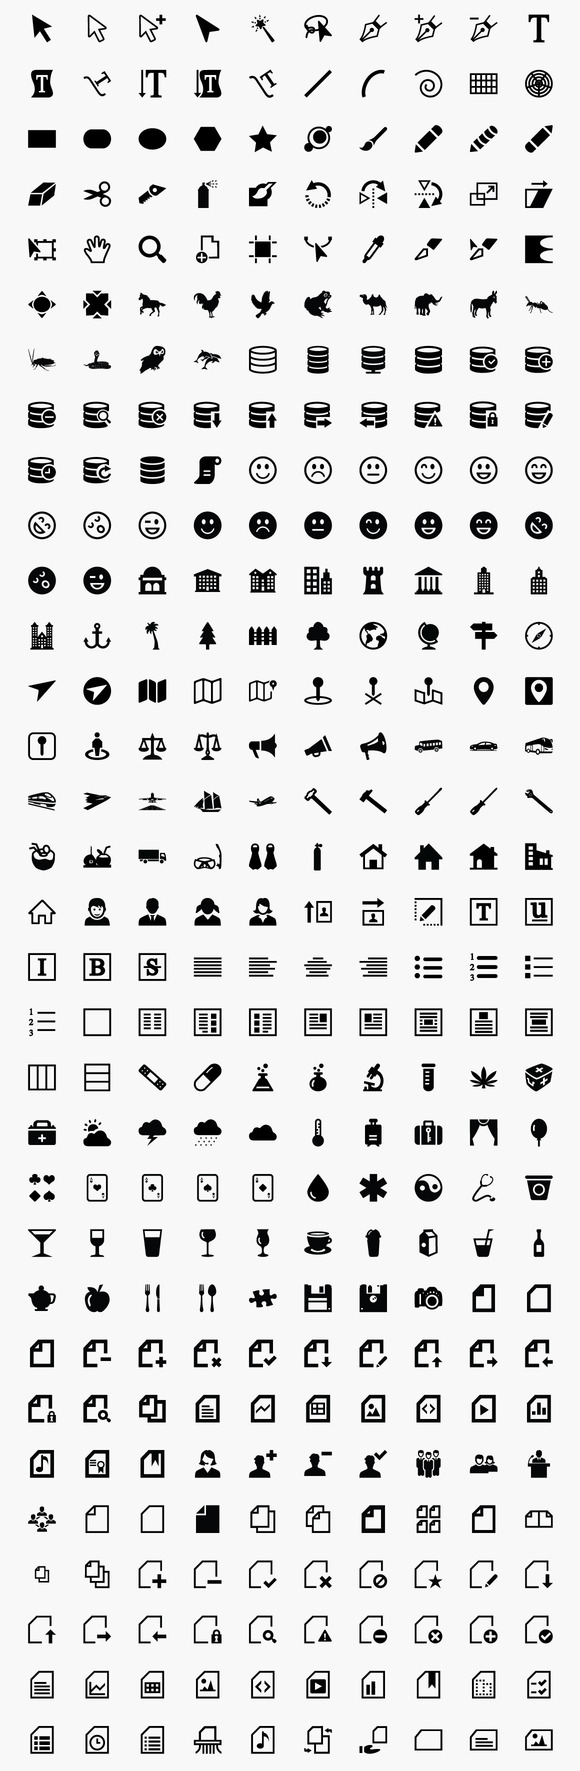 1 720 Icons From MultiSizeIcon Set